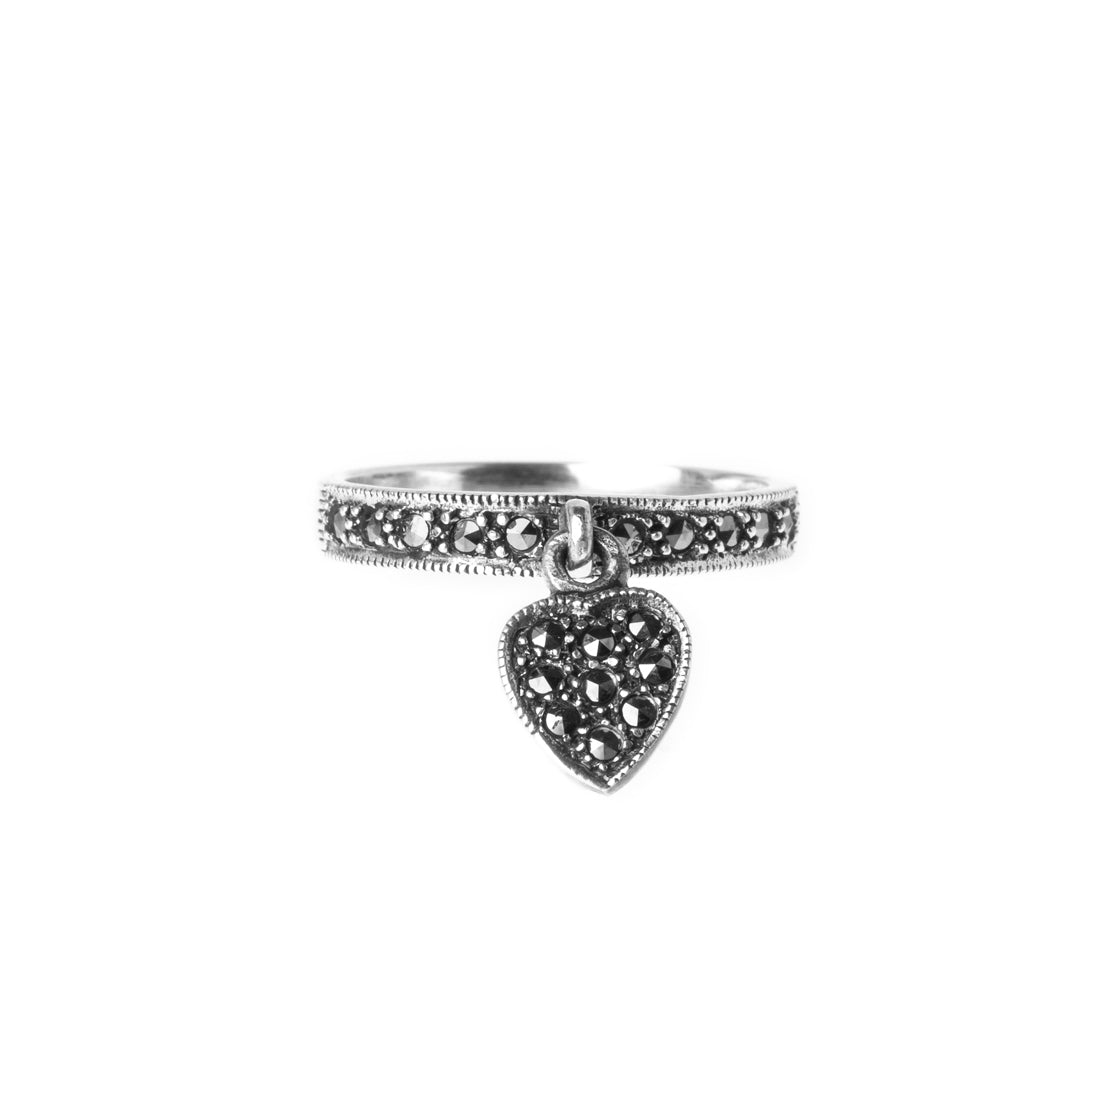 Sterling Silver Ring with Heart Charm LR-7936